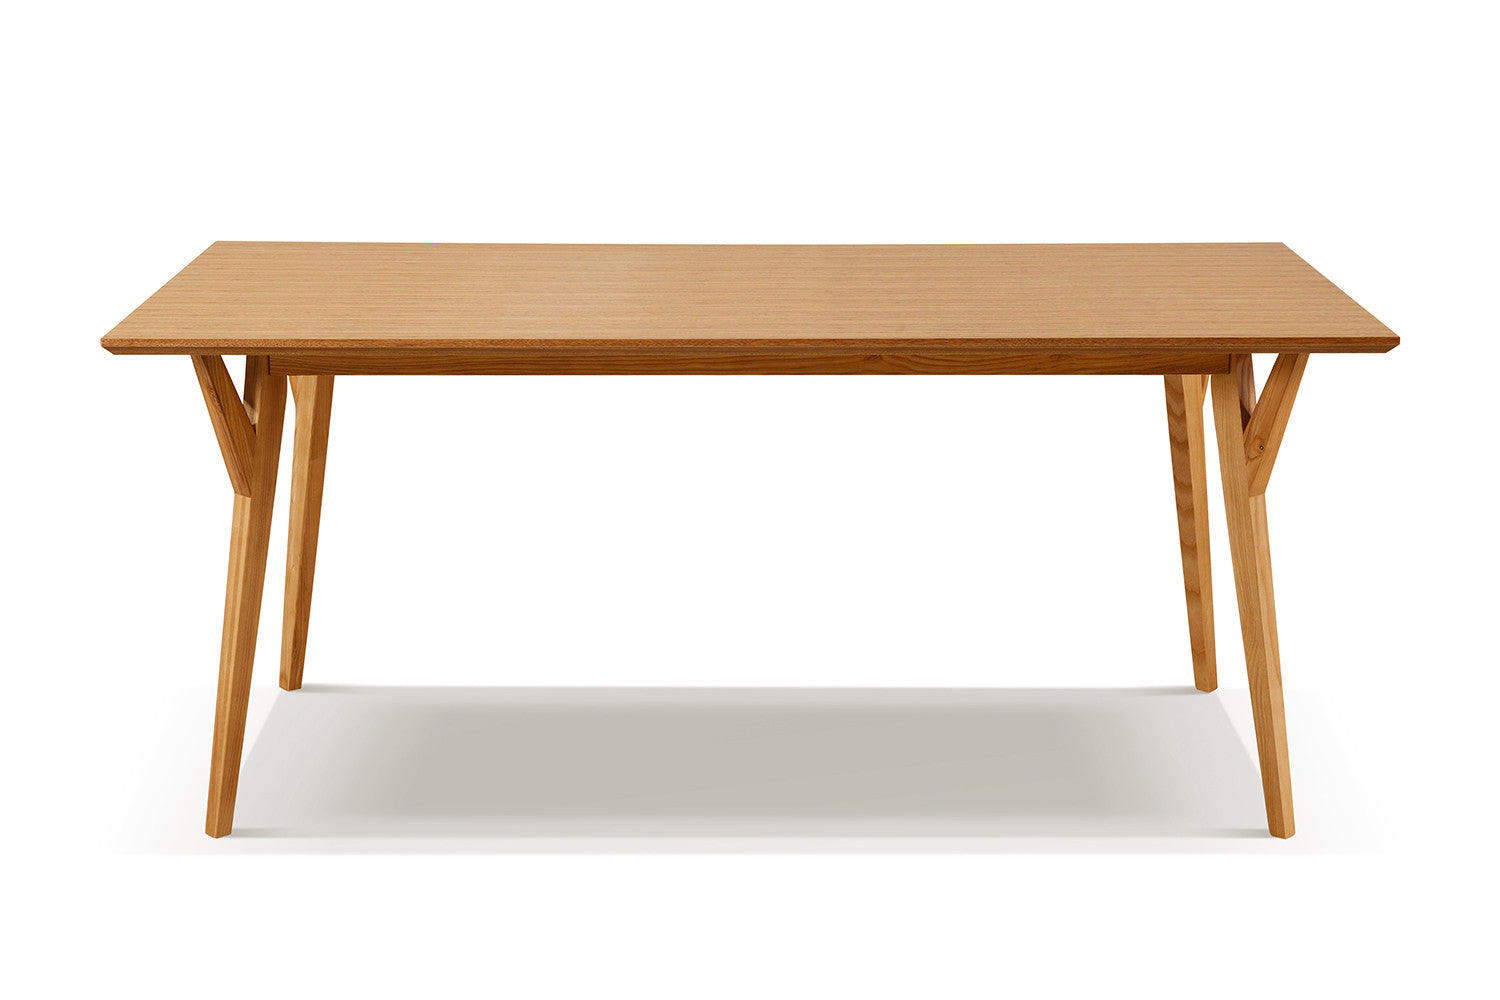 Table de salle manger scandinave en bois linth dewarens for Table a rallonge design scandinave